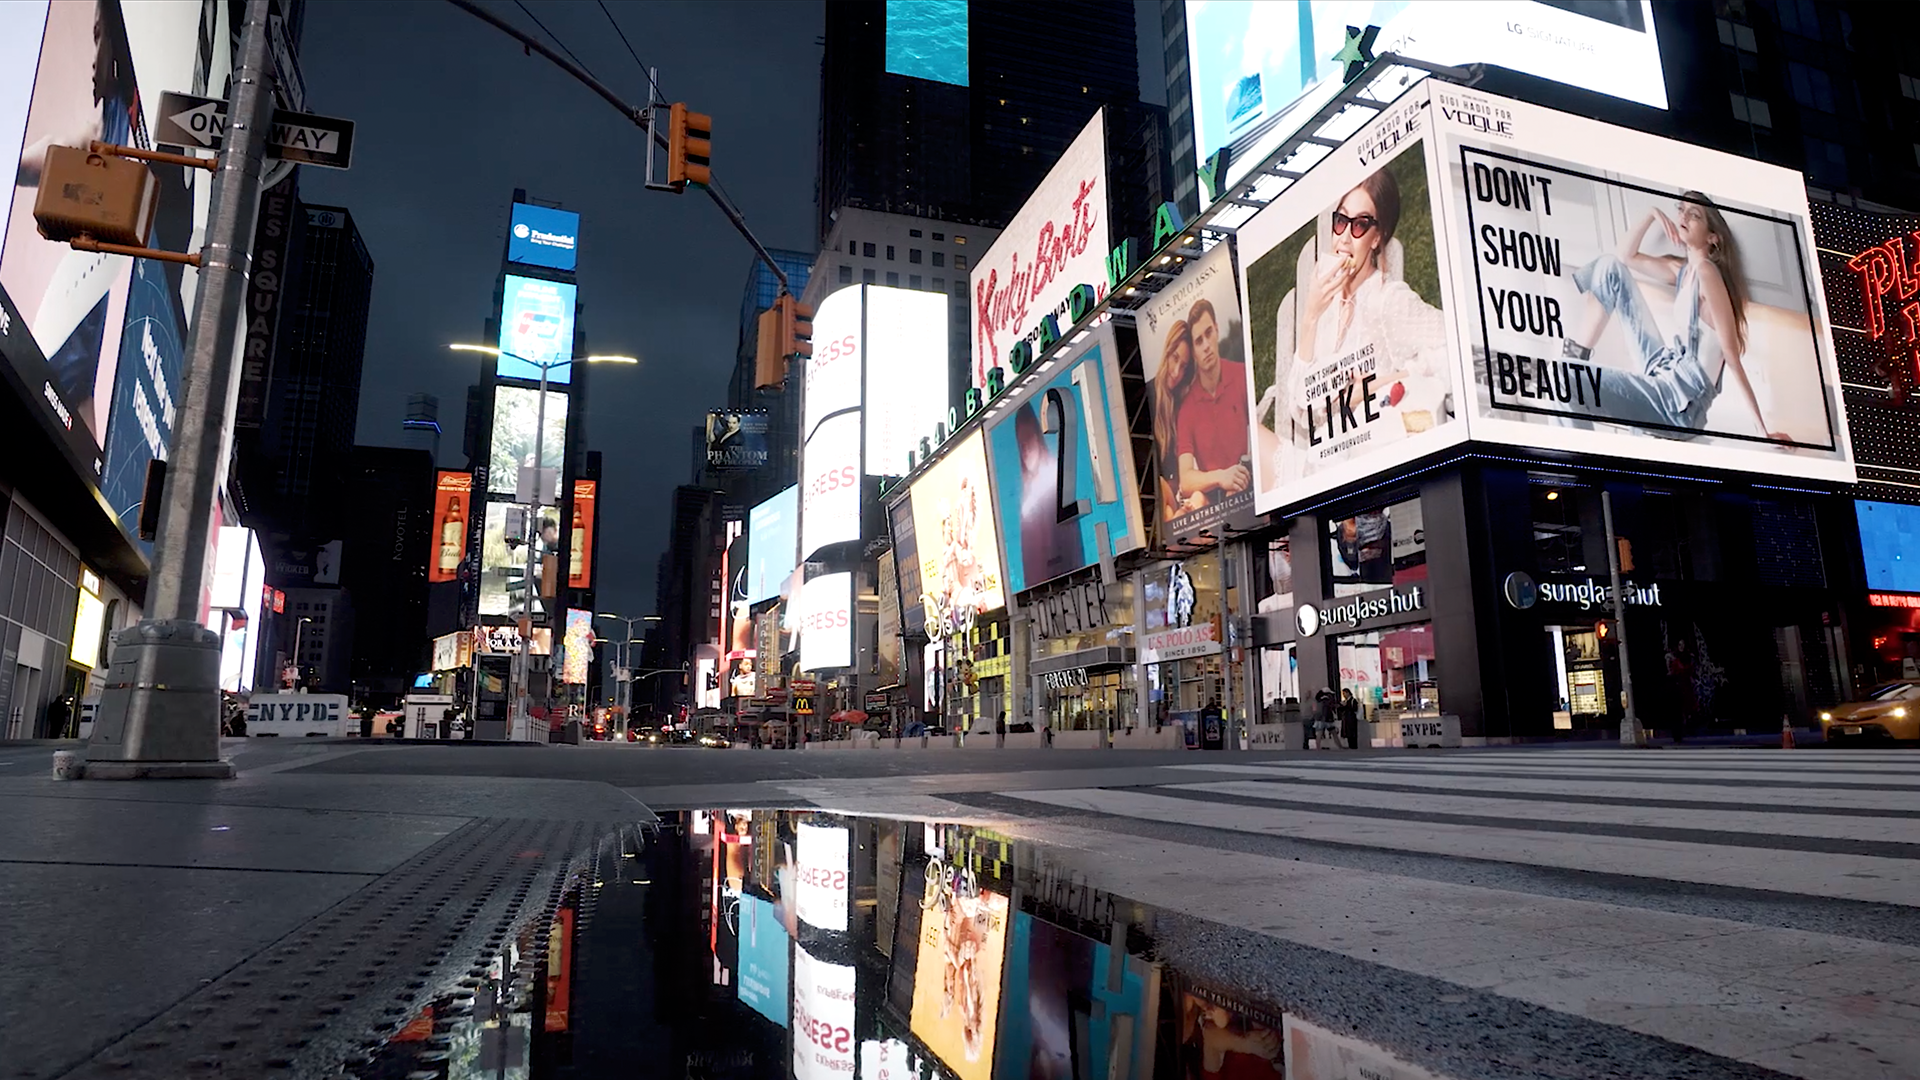 New York City Street view with illuminated Ad displays in the background, reflecting in a small water pond on the street